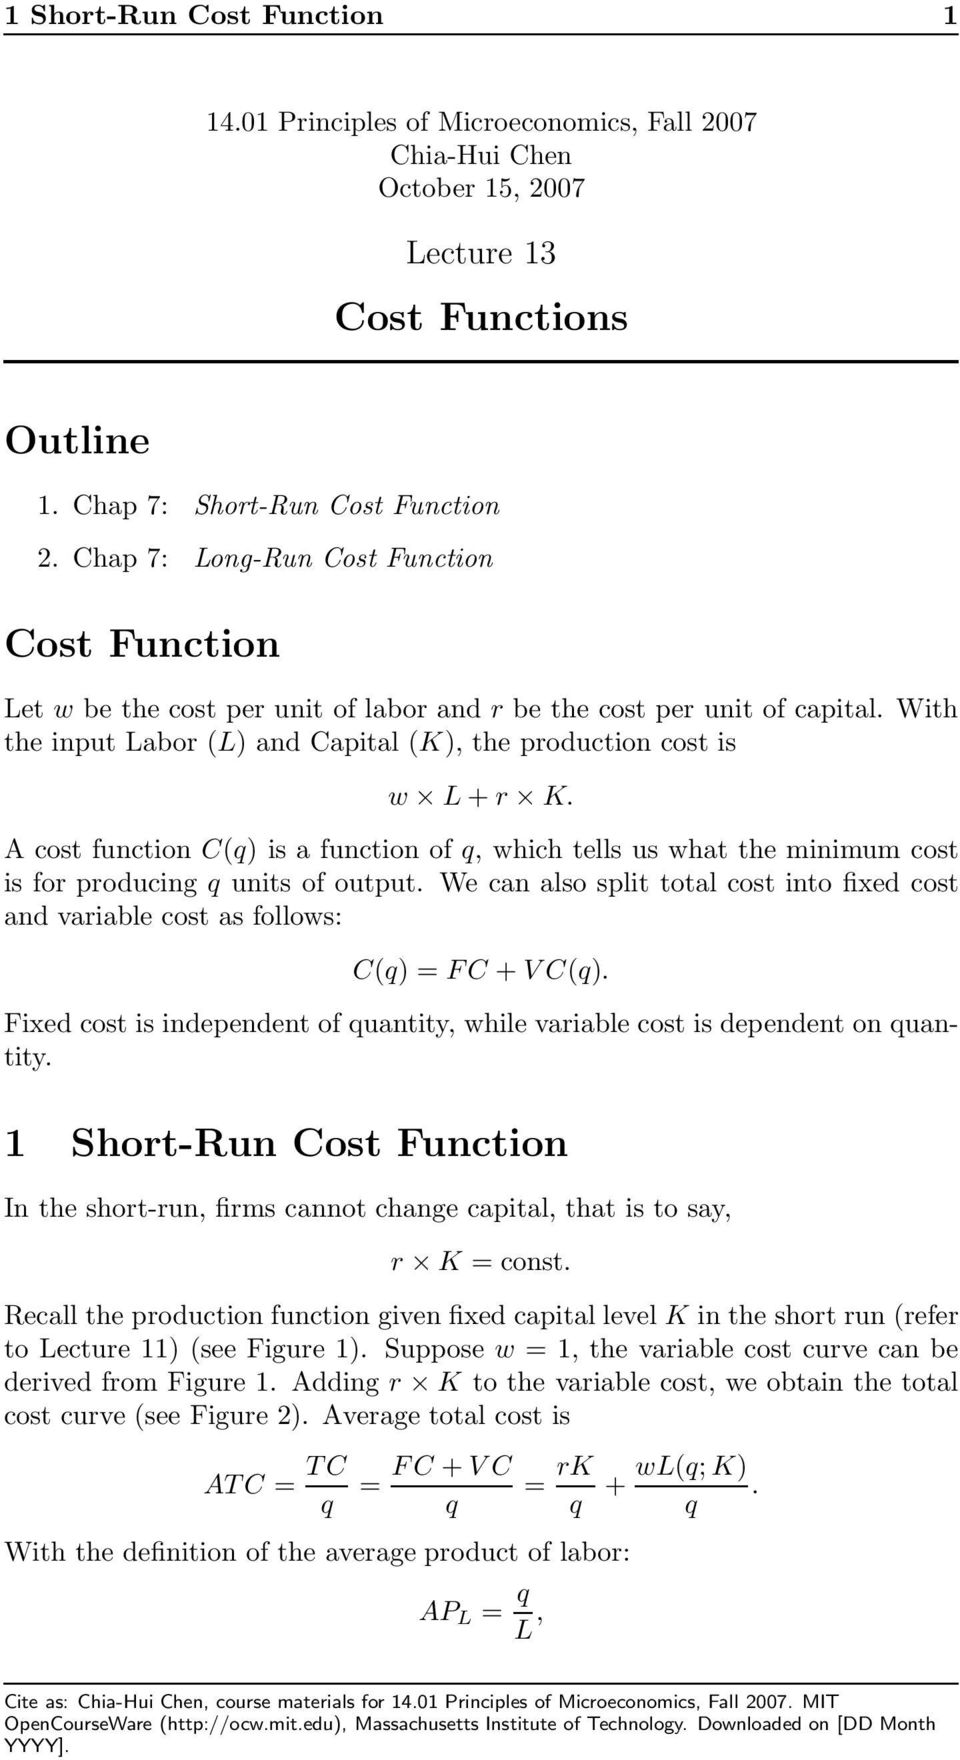 A cost function C(q) is a function of q, which tells us what the minimum cost is for producing q units of output.